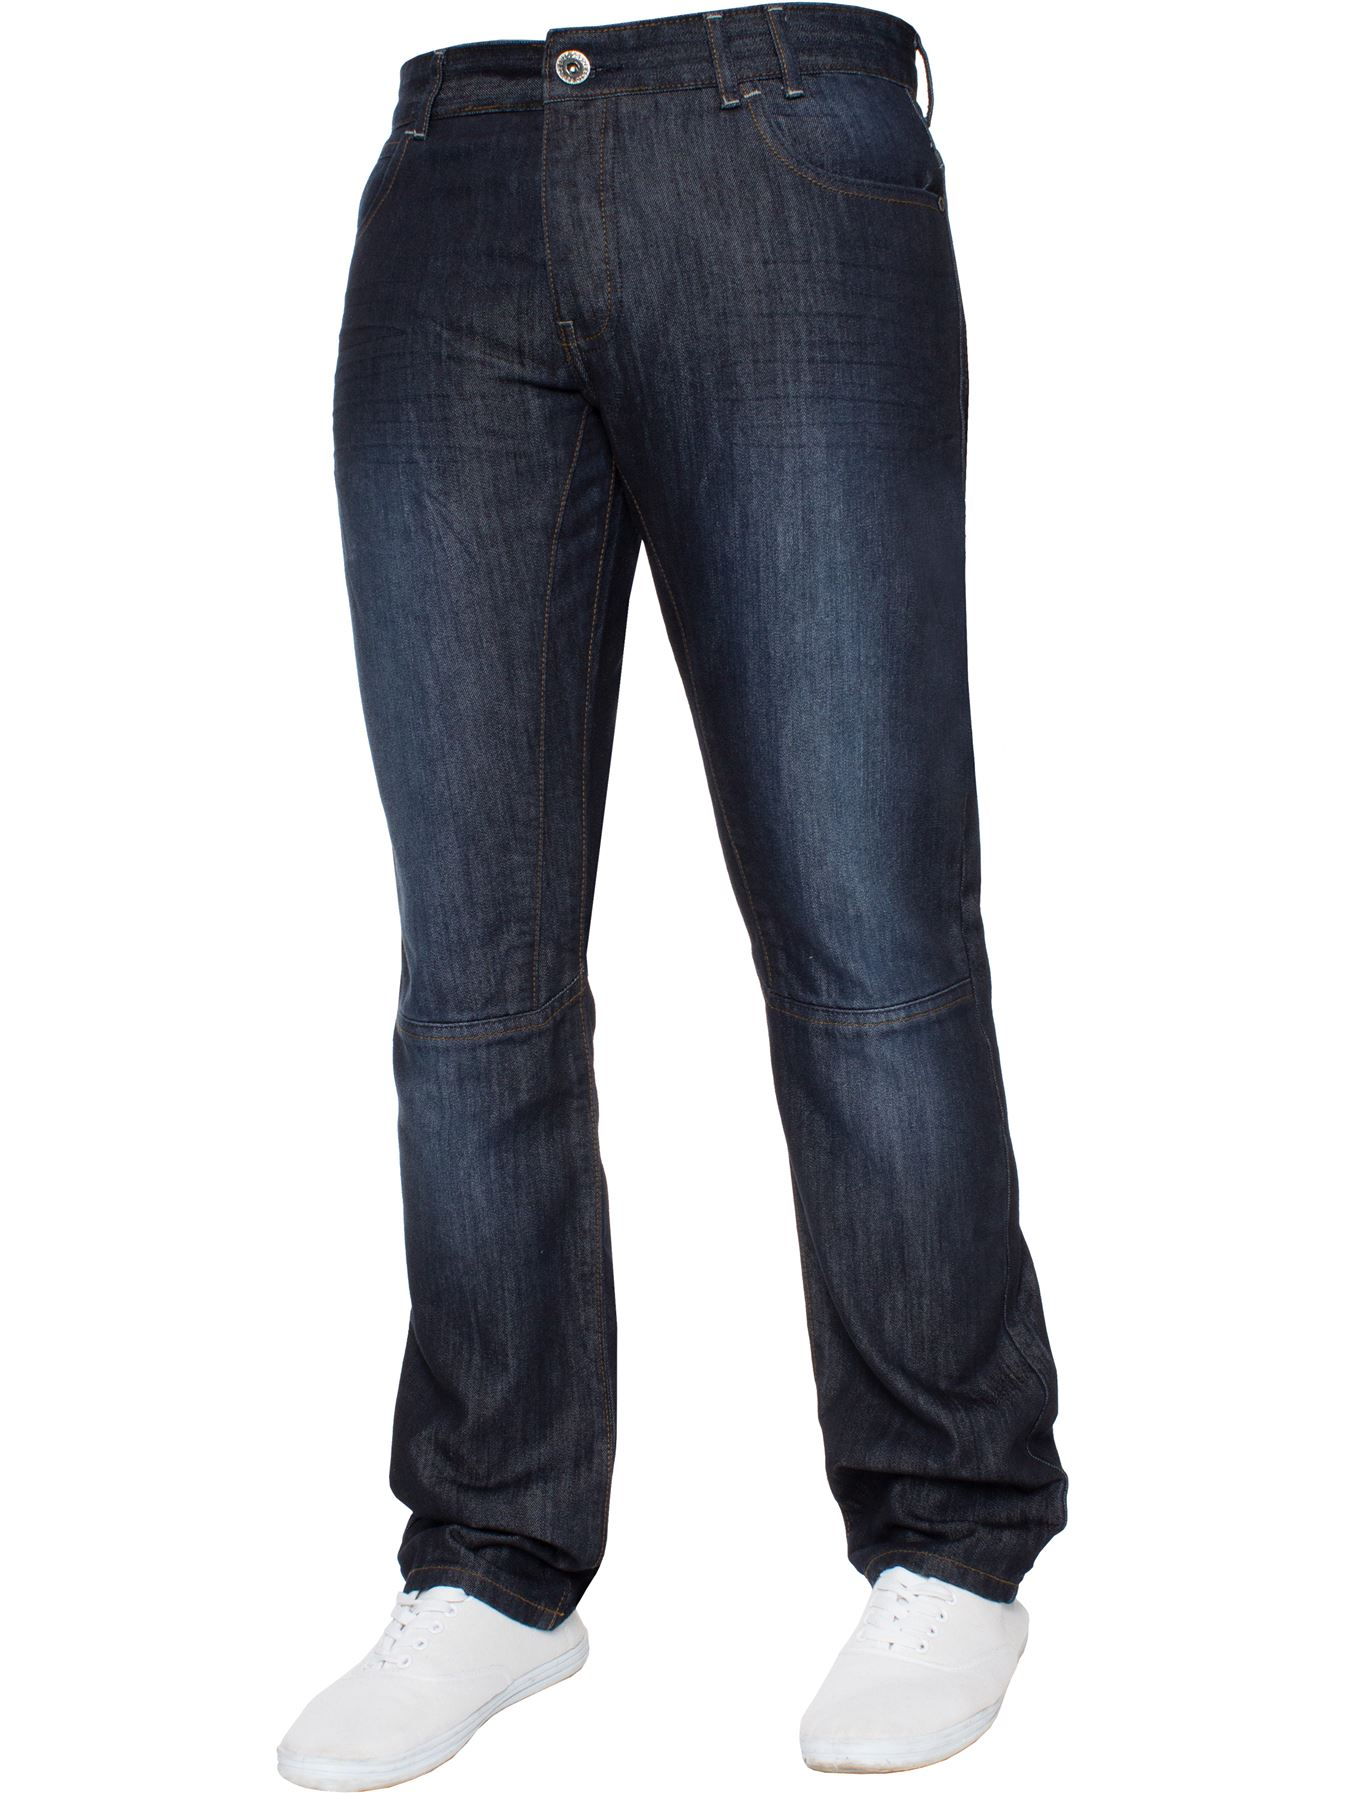 Enzo-Mens-Straight-Jeans-Regular-Leg-Designer-Work-Denim-Pants-All-Waists-Sizes thumbnail 34